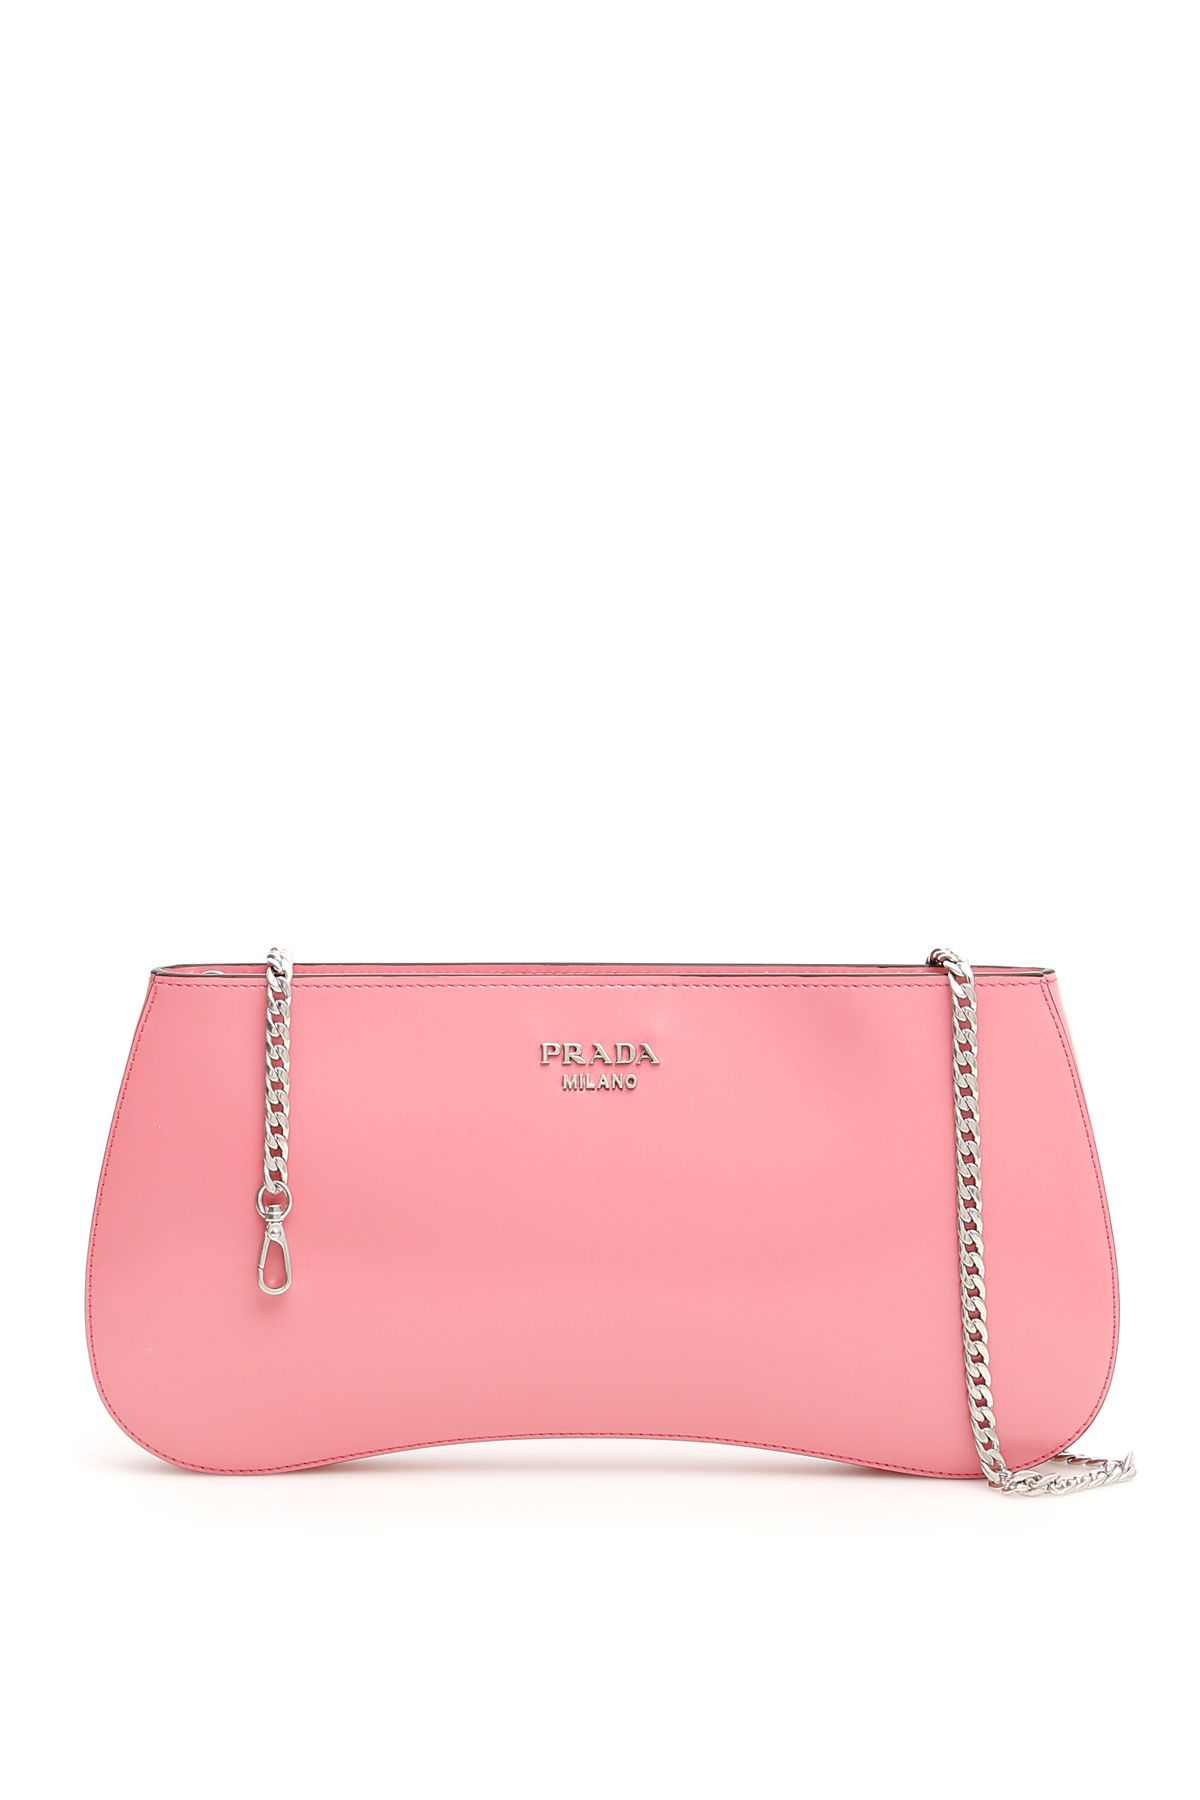 Prada Brushed Calfskin Clutch